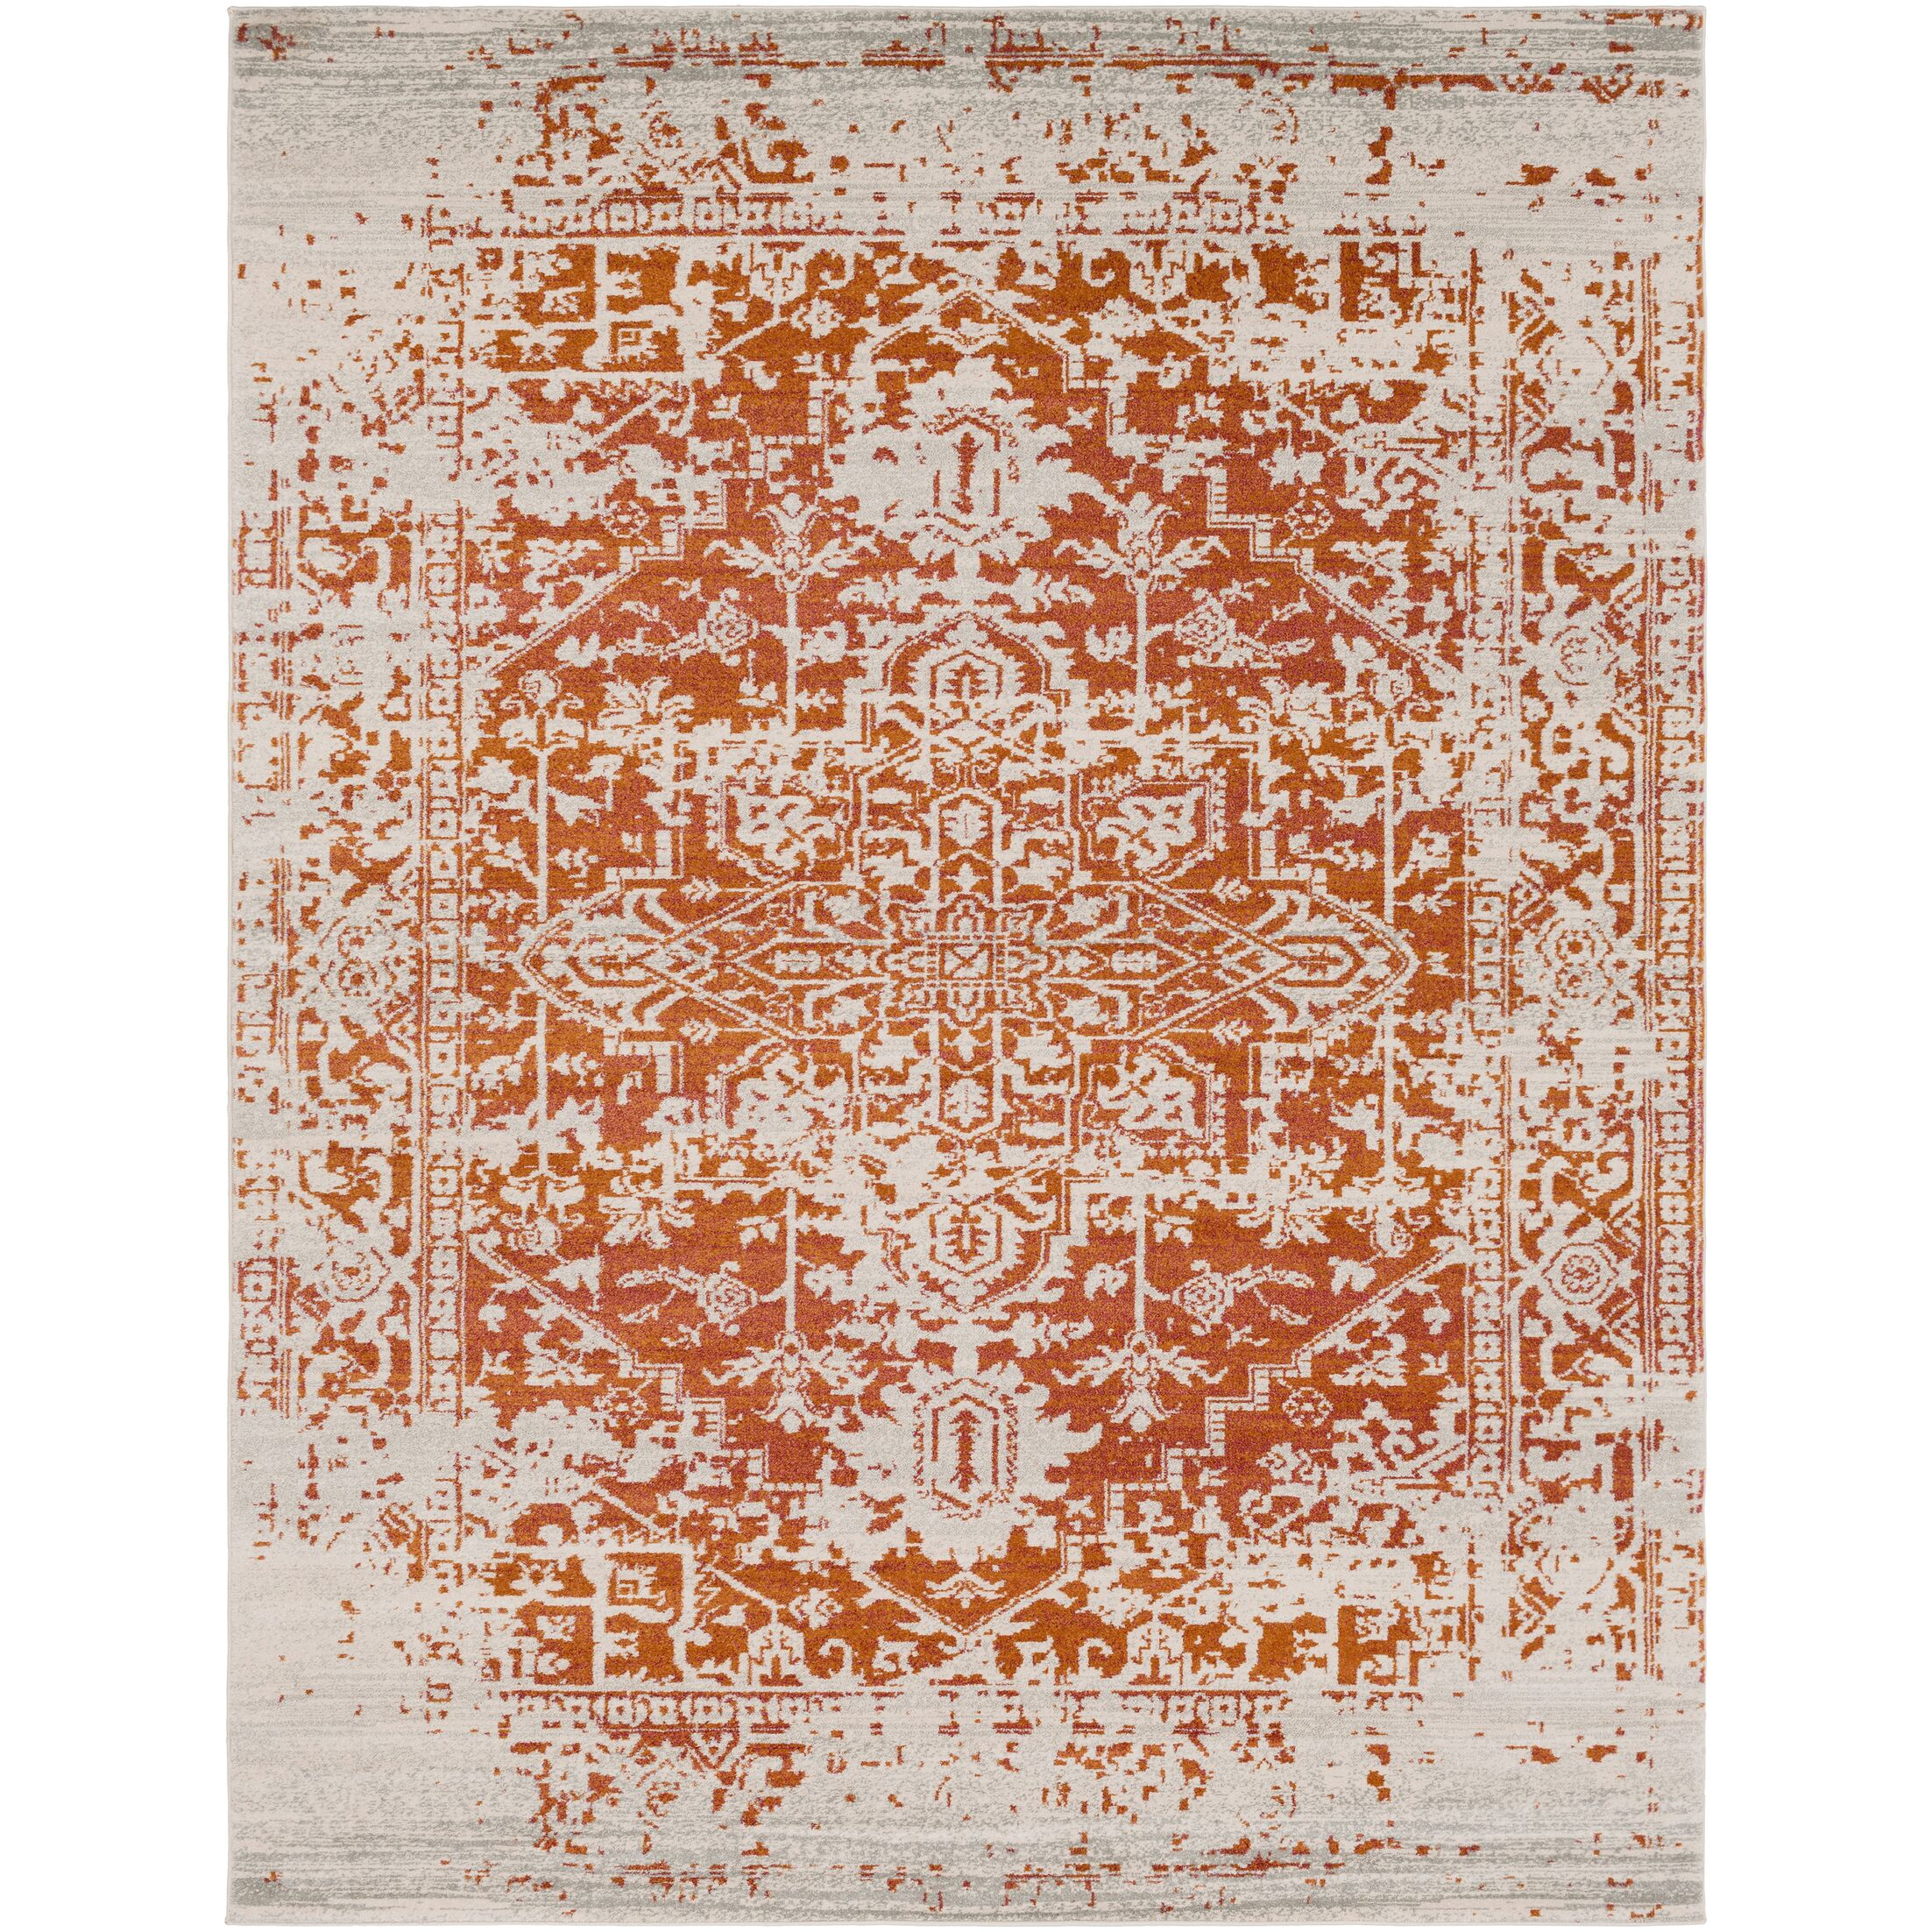 Hillsby Orange/Beige Area Rug Rug Size: Rectangle 9'3